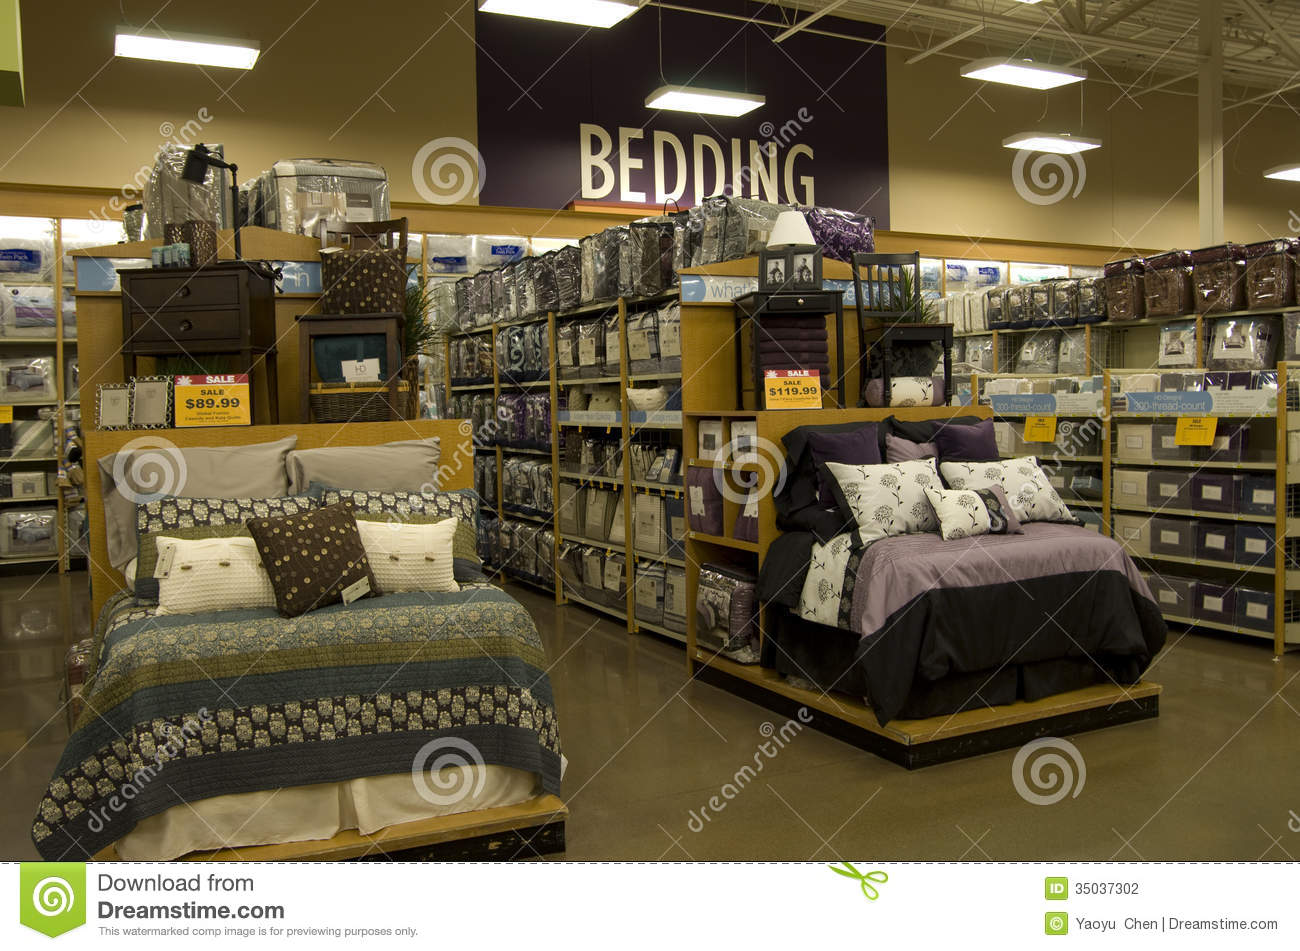 Awesome Home Goods Store Pillows Gallery Home Ideas Design